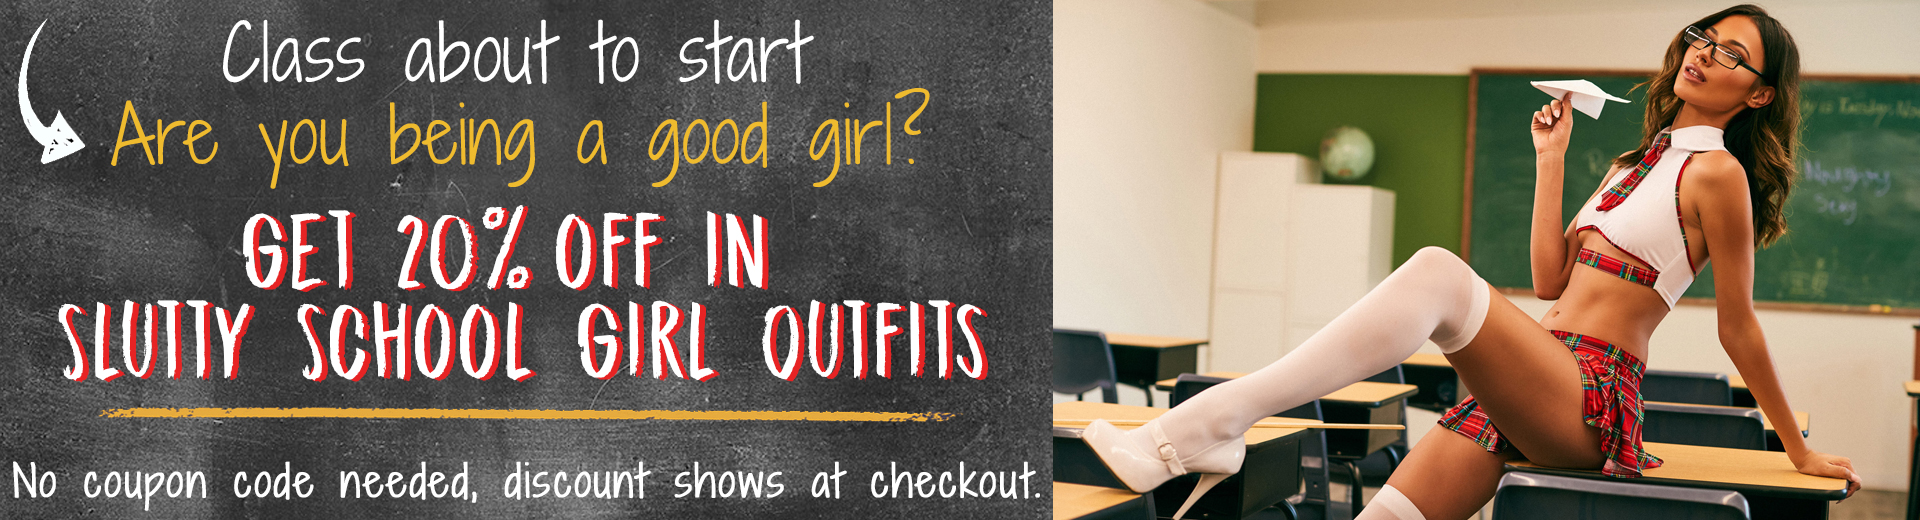 Sexy School Girl Outfit Sale 20% off